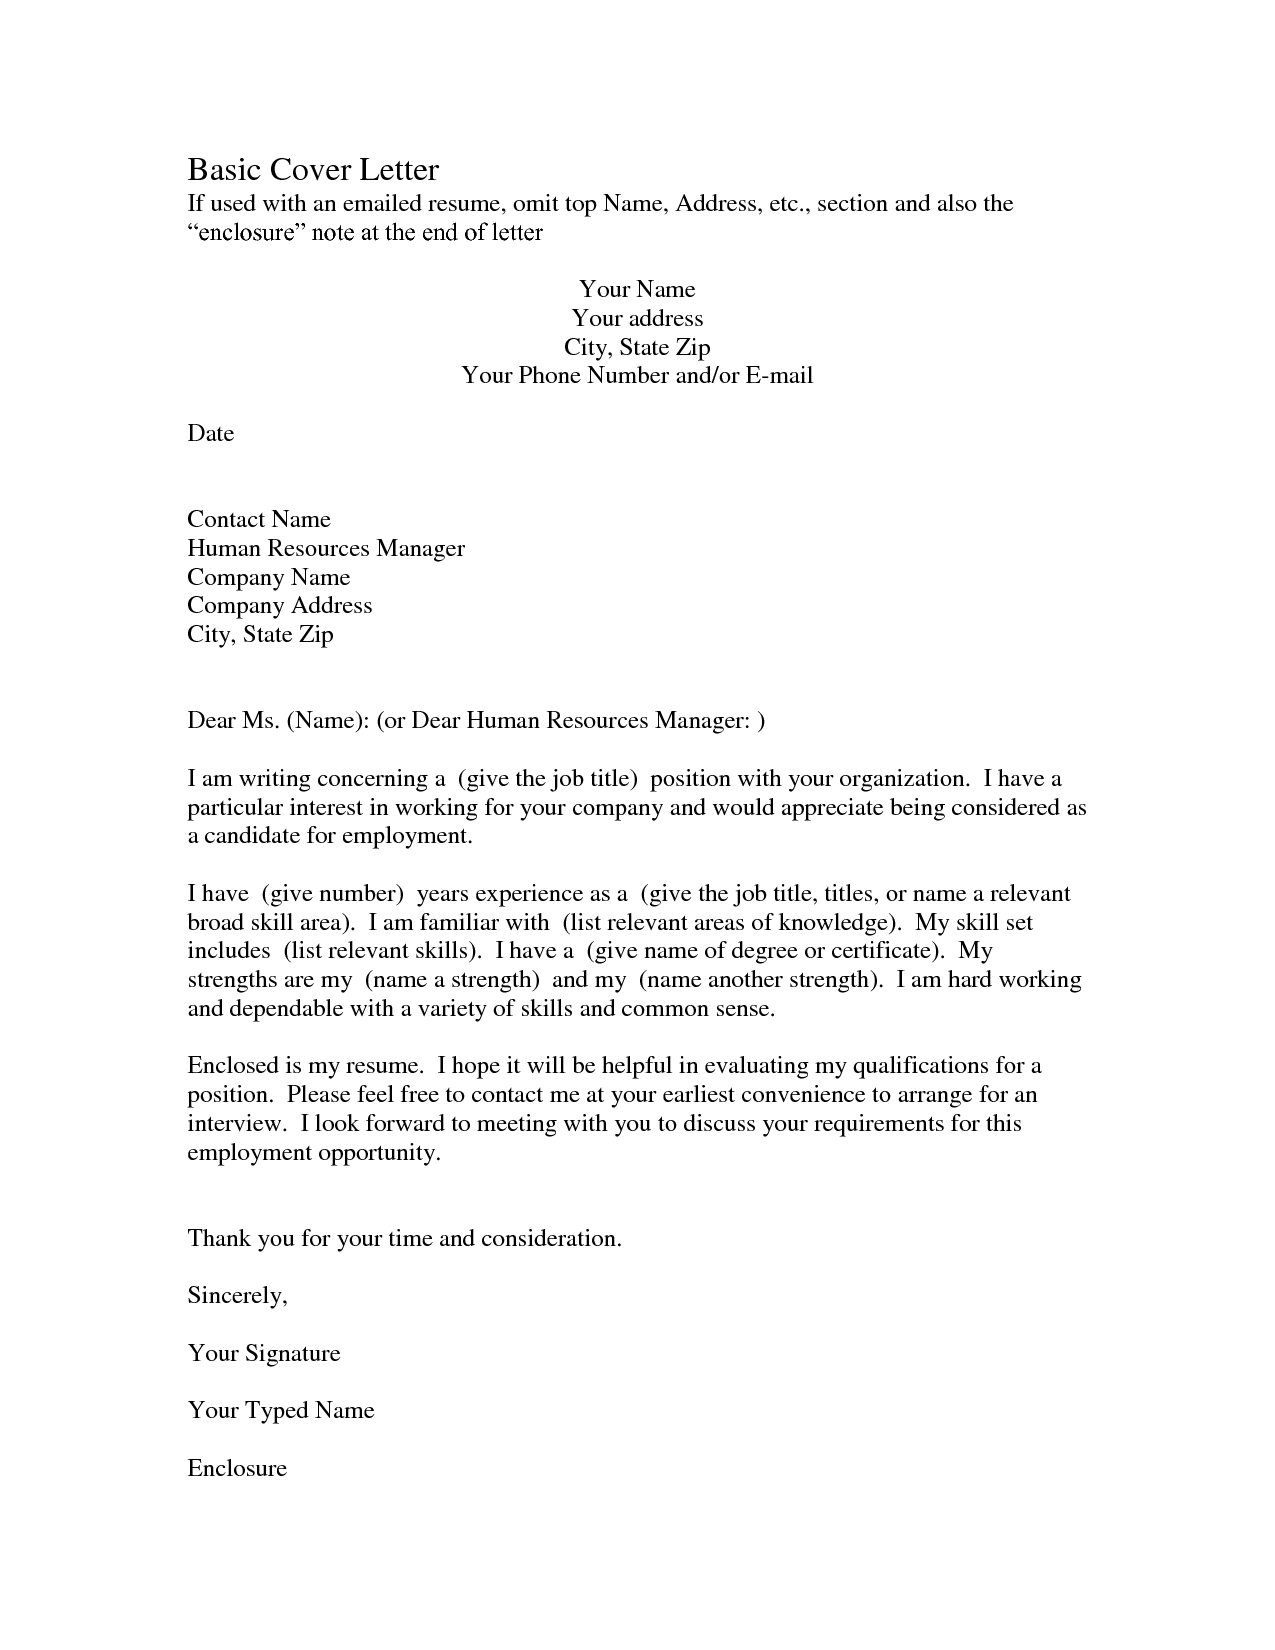 covering letter example simple cover letter examplesimple cover letter application letter sample - Writing A Cover Letter For Job